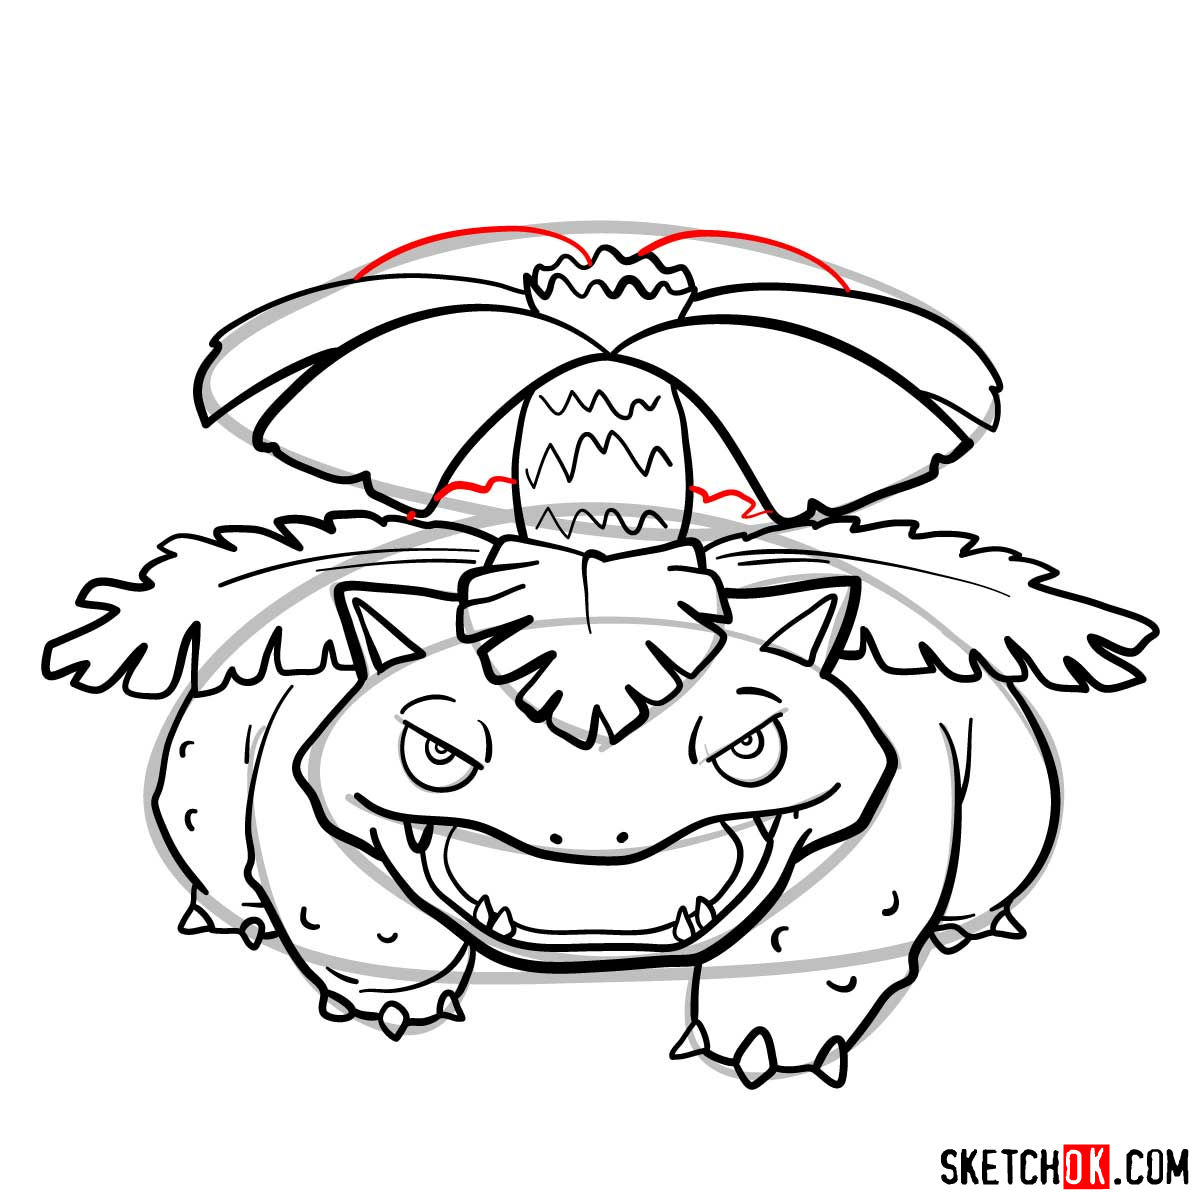 How to draw Venusaur Pokemon - step 12